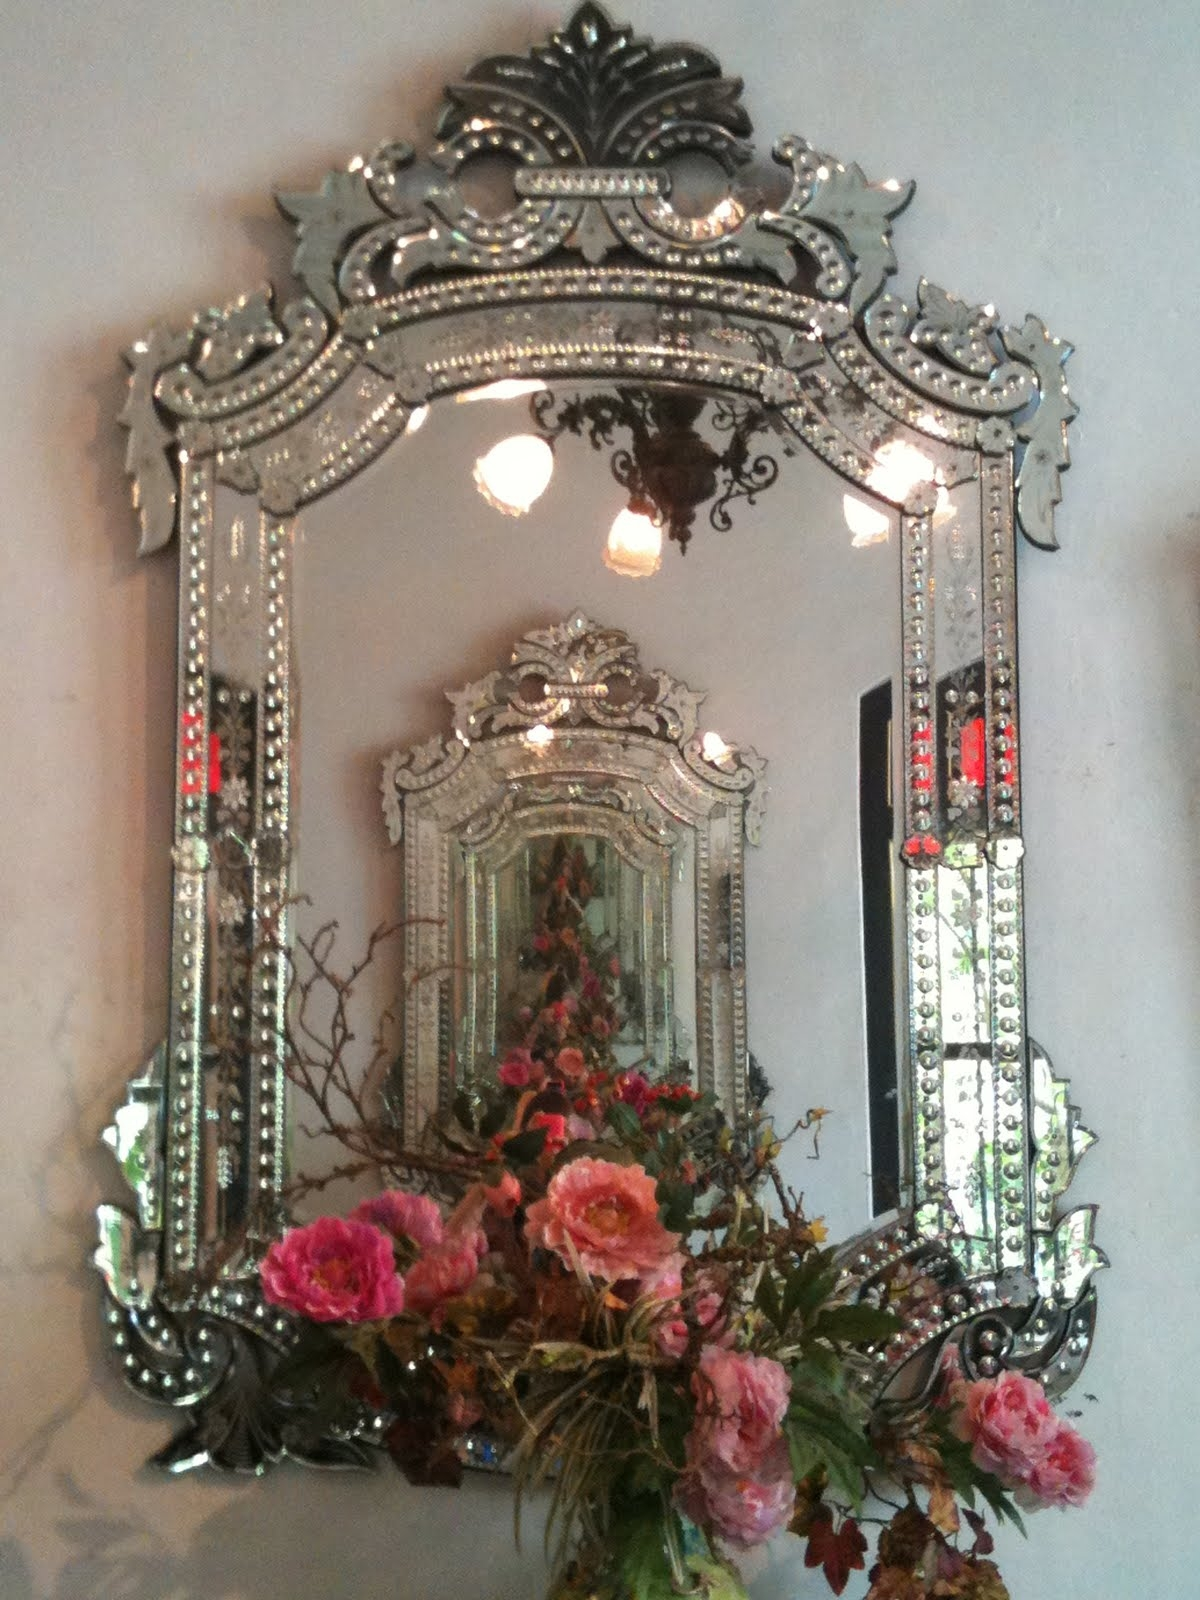 Venetian Mirror Ami The Prettiest Asked The Rose Ohhhh I Love With Regard To Antique Venetian Mirrors For Sale (Photo 12 of 15)